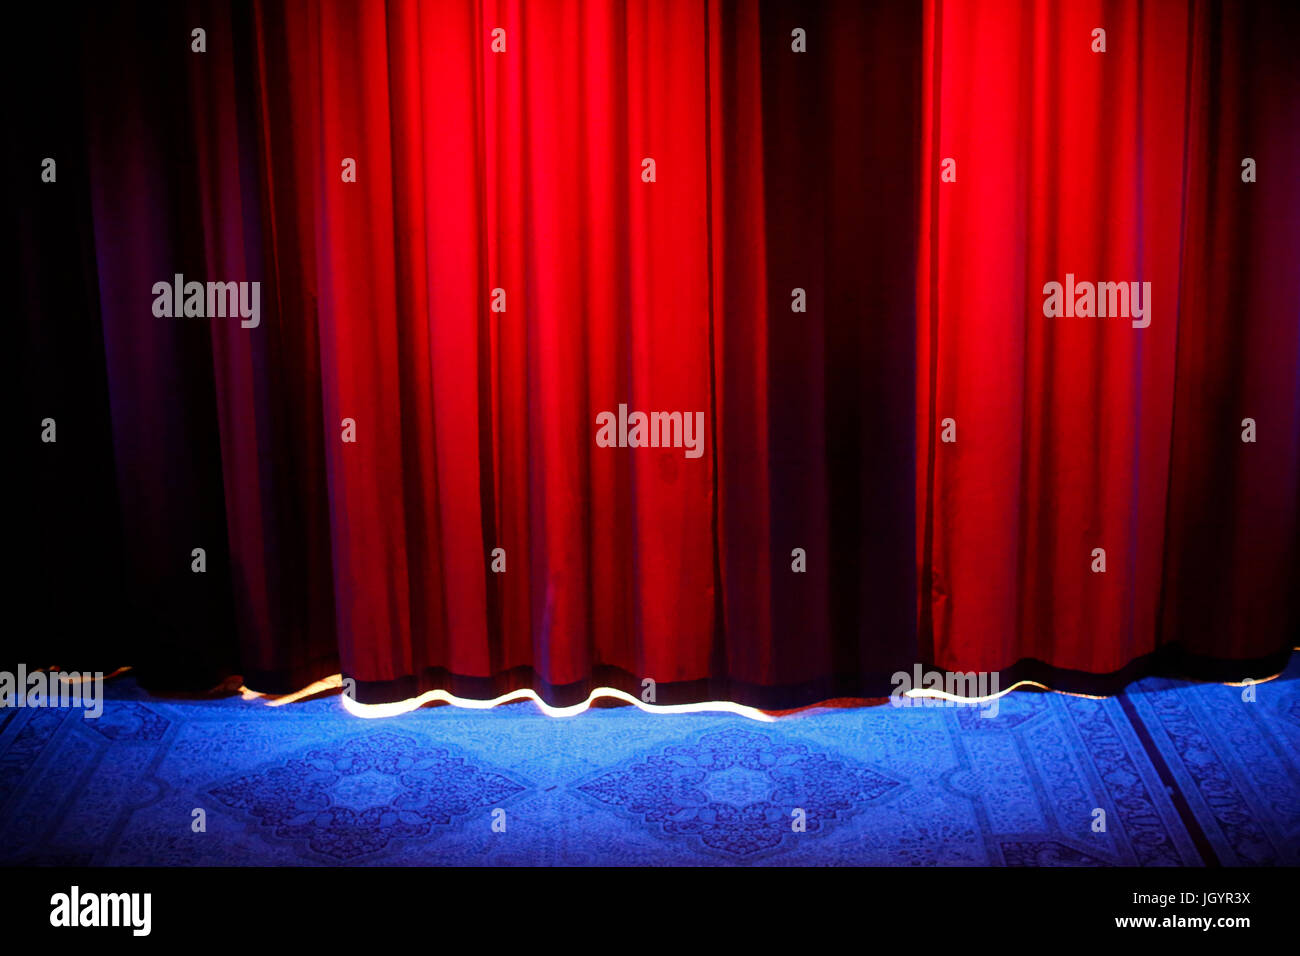 Stage curtain. France. - Stock Image